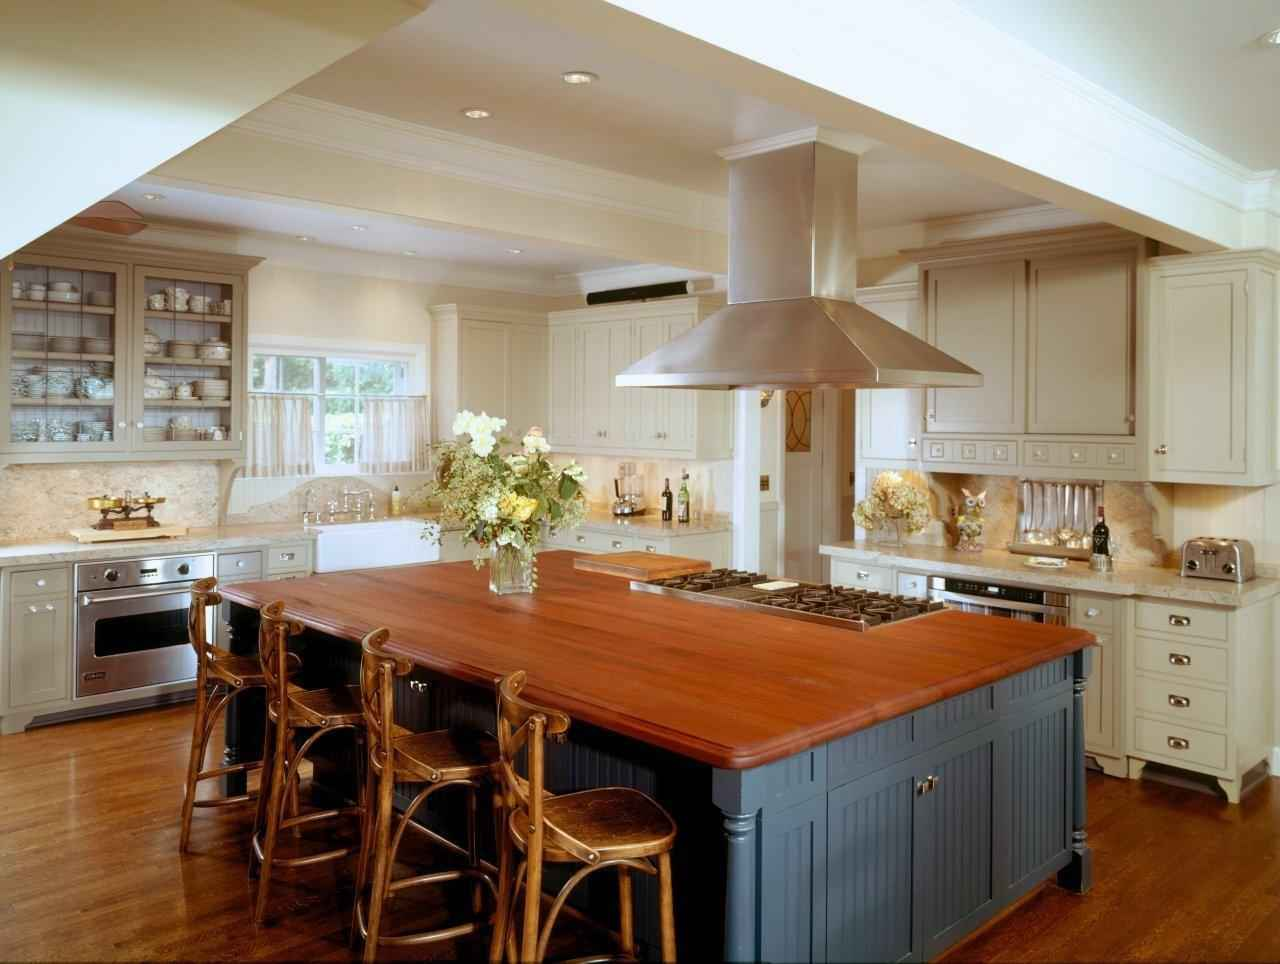 Cheap countertop ideas for your kitchen for Simple and cheap kitchen design